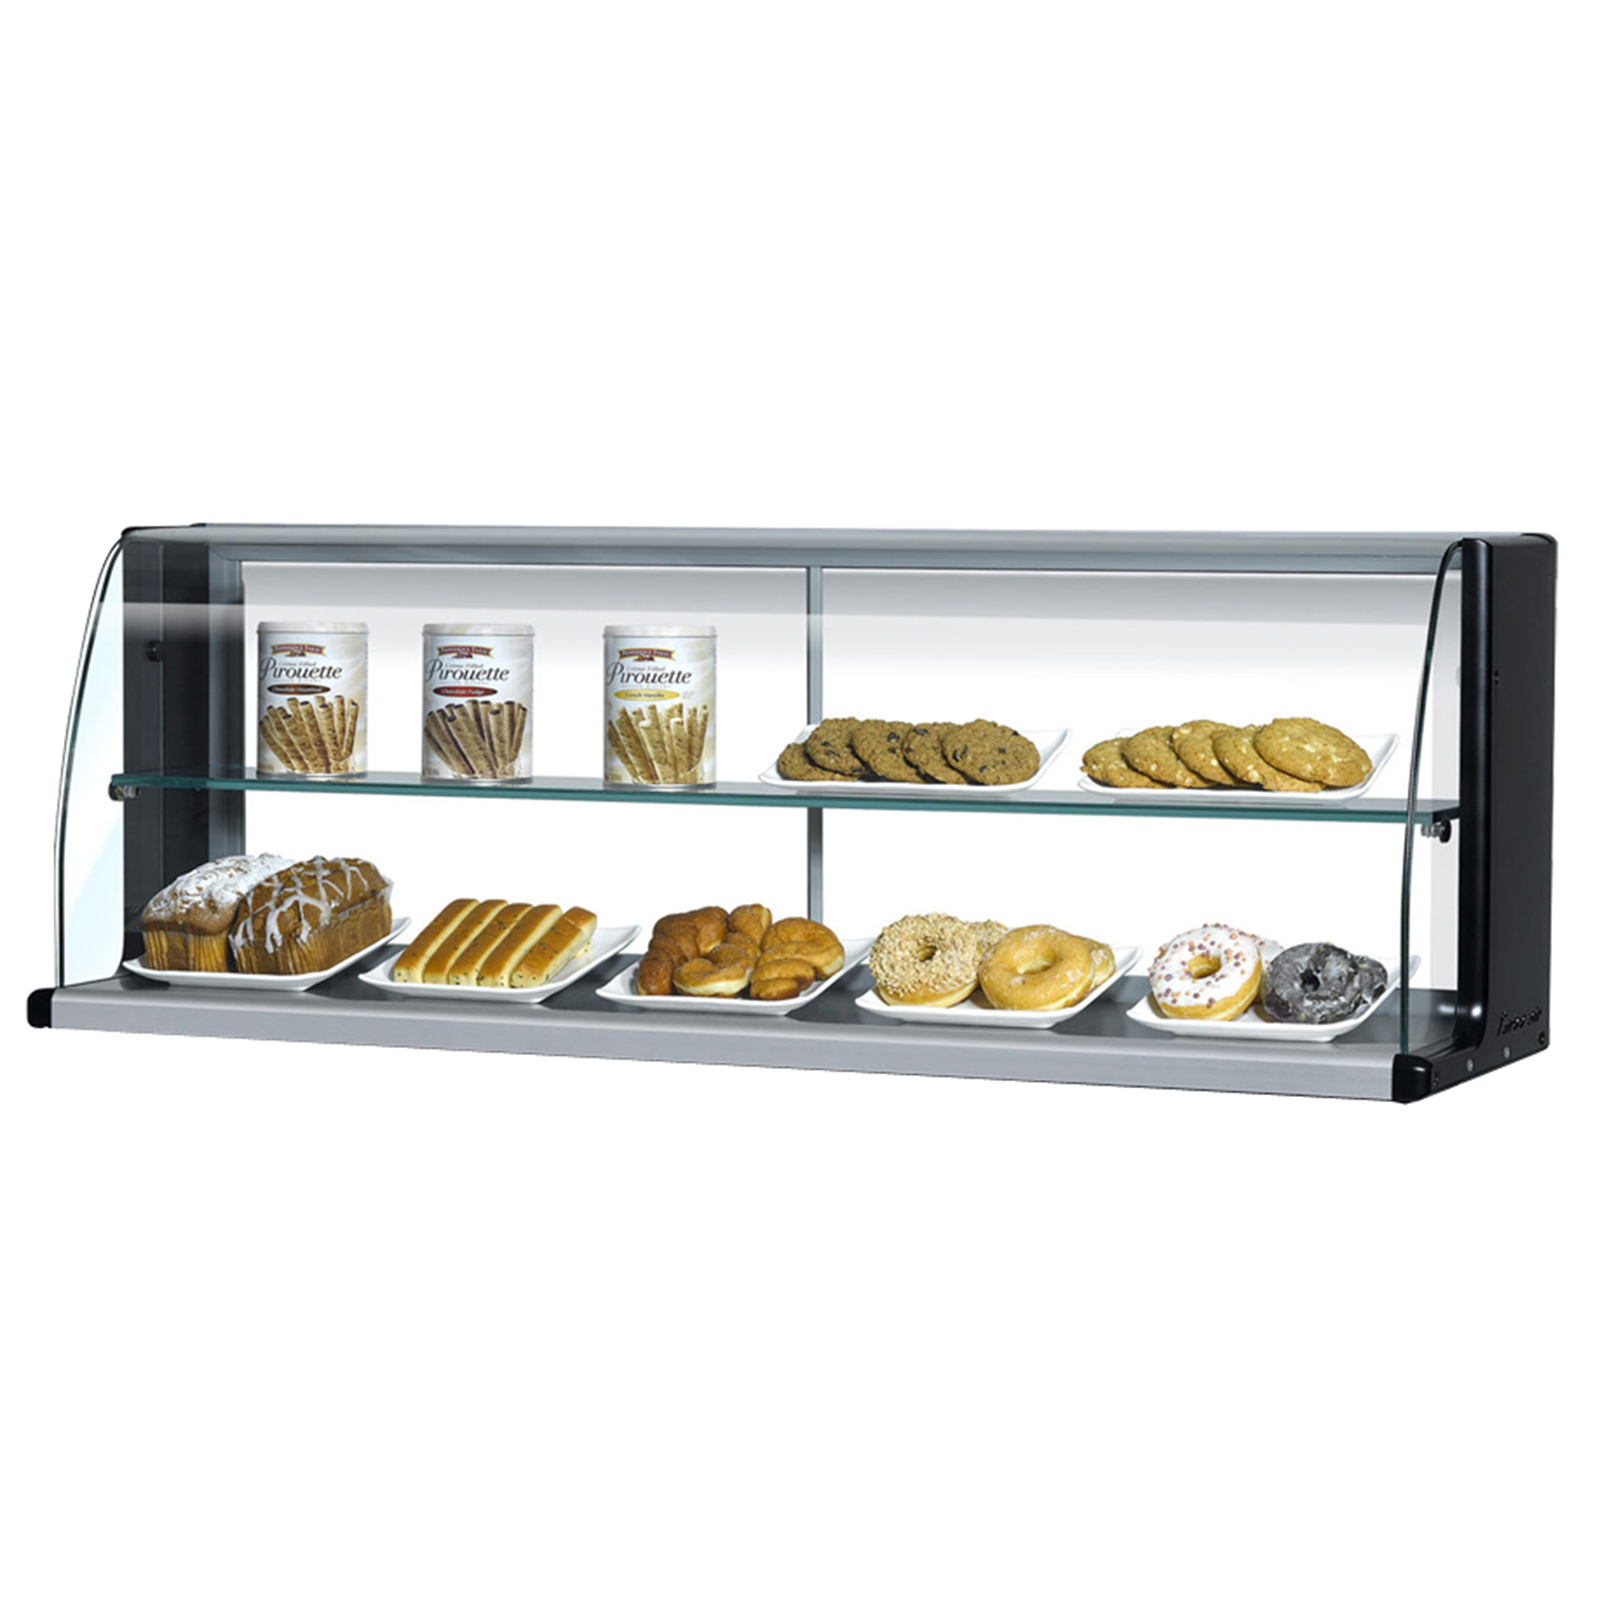 Turbo Air TOMD-30HB display case, non-refrigerated countertop